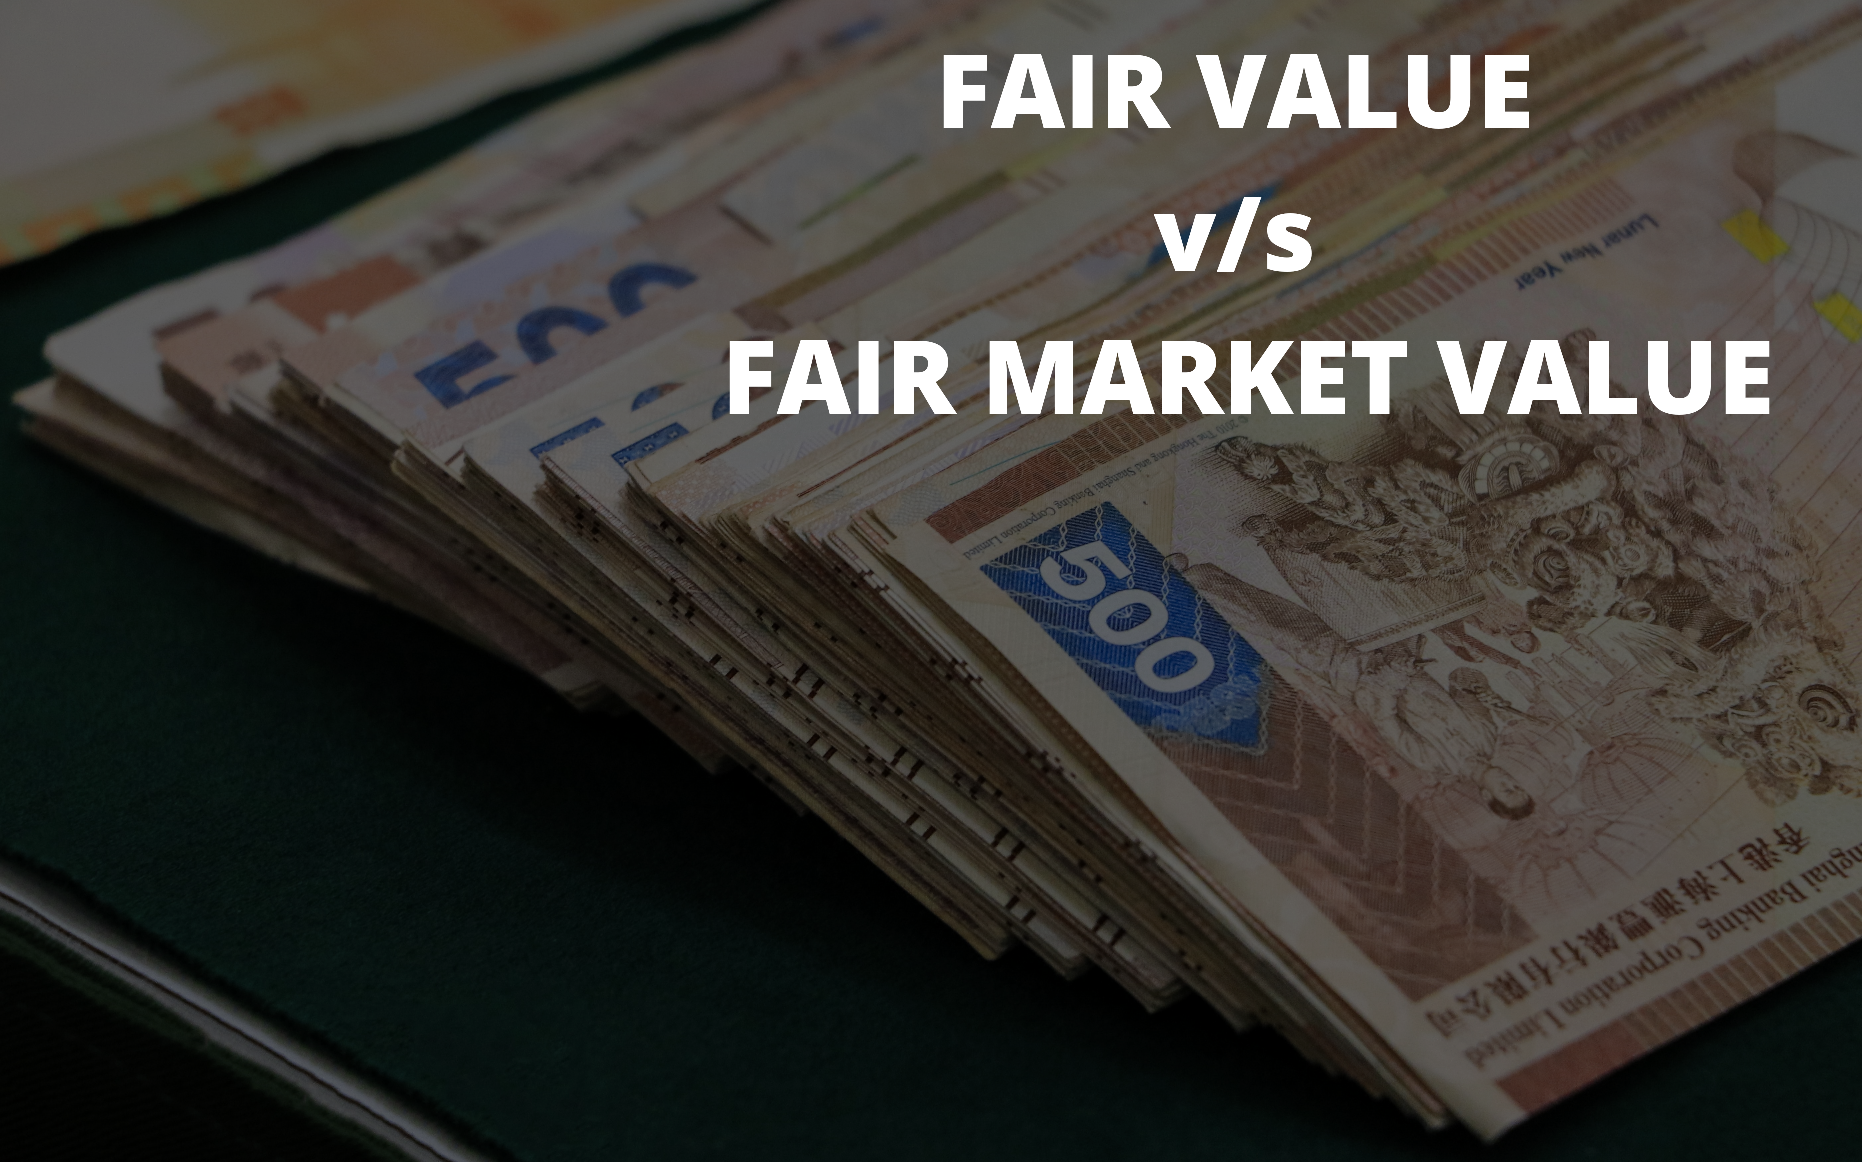 assessed value vs. fair market value, fair value vs. fair market value, book value vs. fair market value, Difference between fair value and fair market value, Current market value vs. fair market value